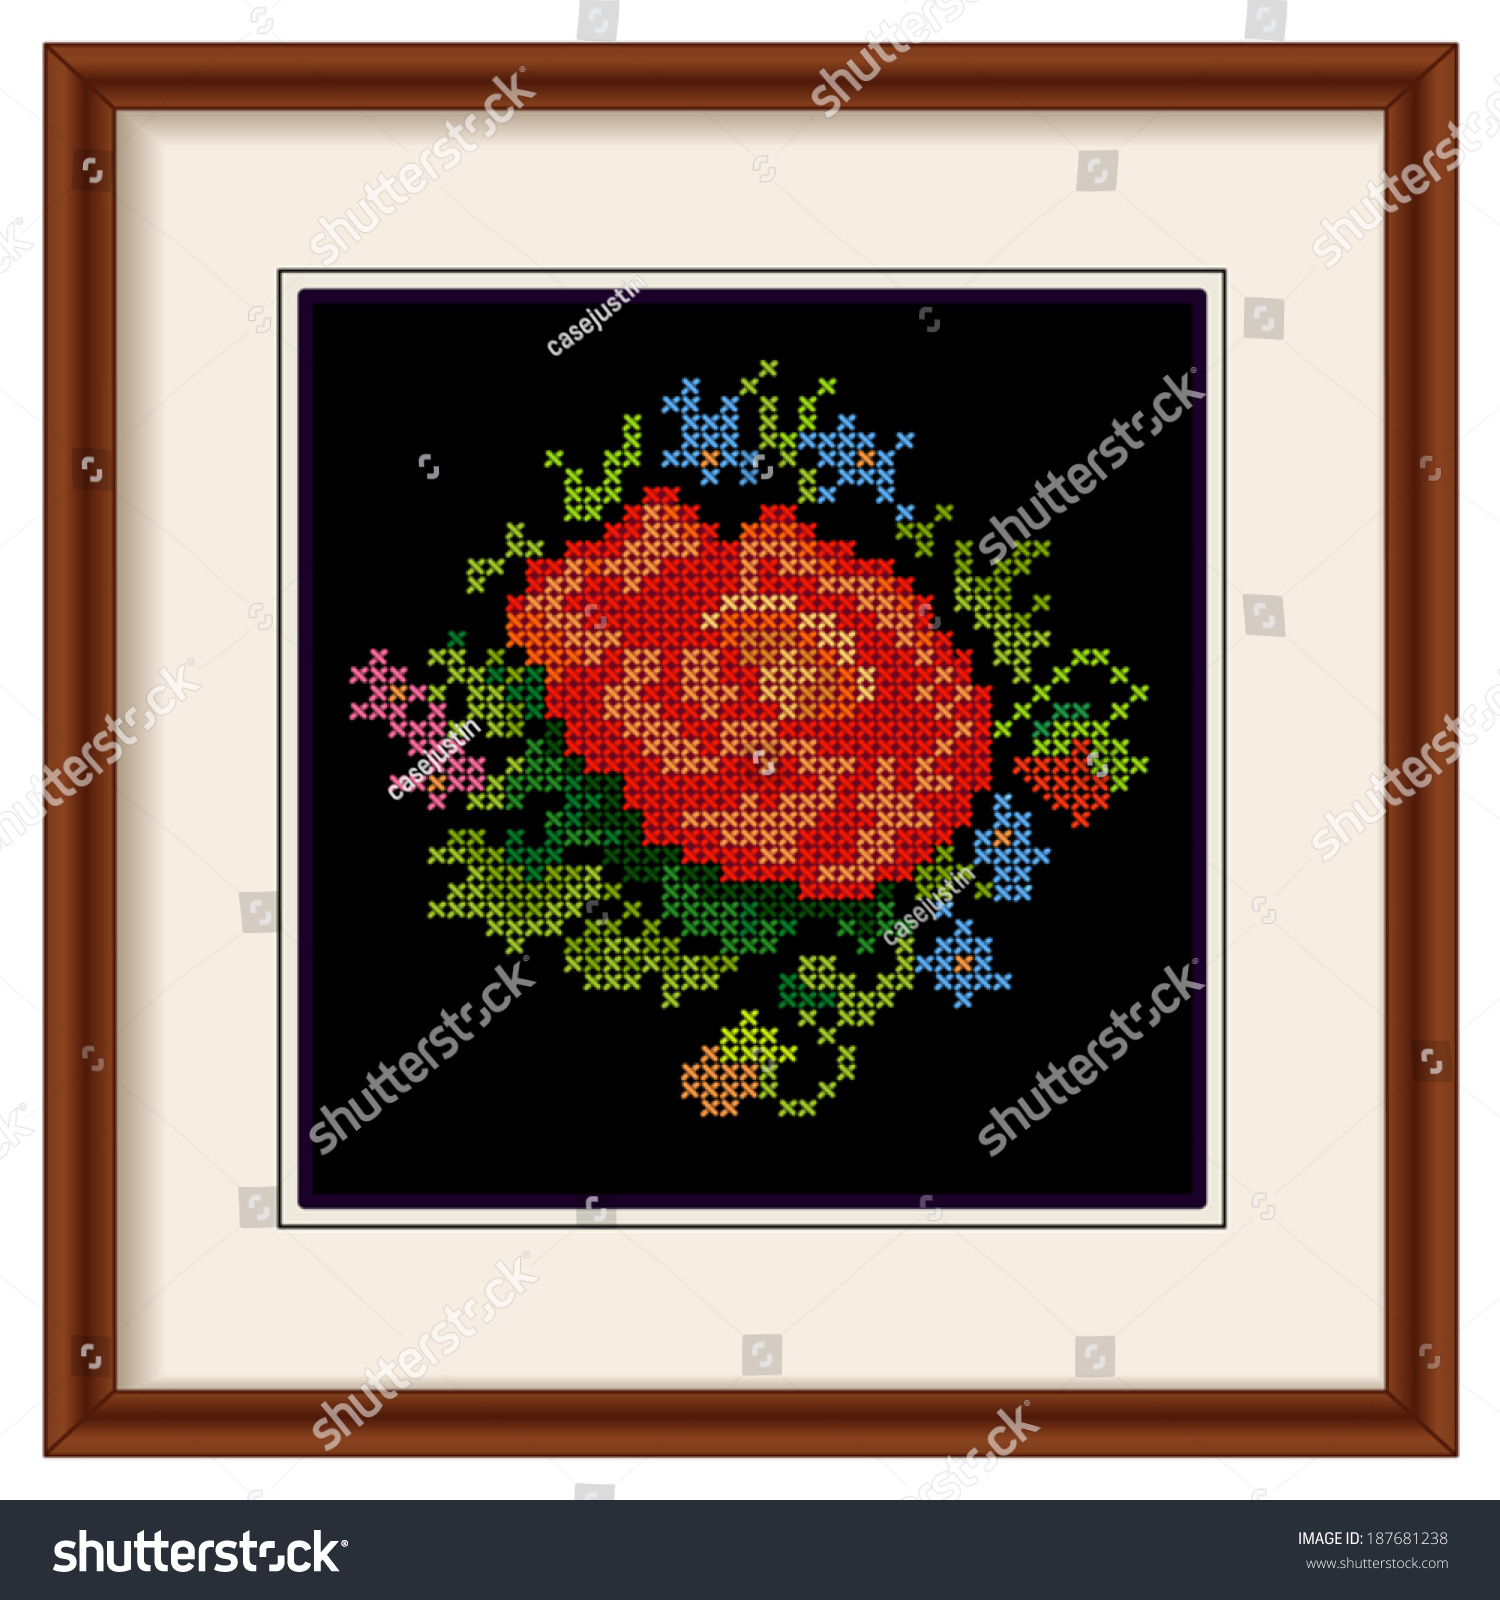 Embroidery Rose Mahogany Wood Picture Frame Stock Vector 187681238 ...